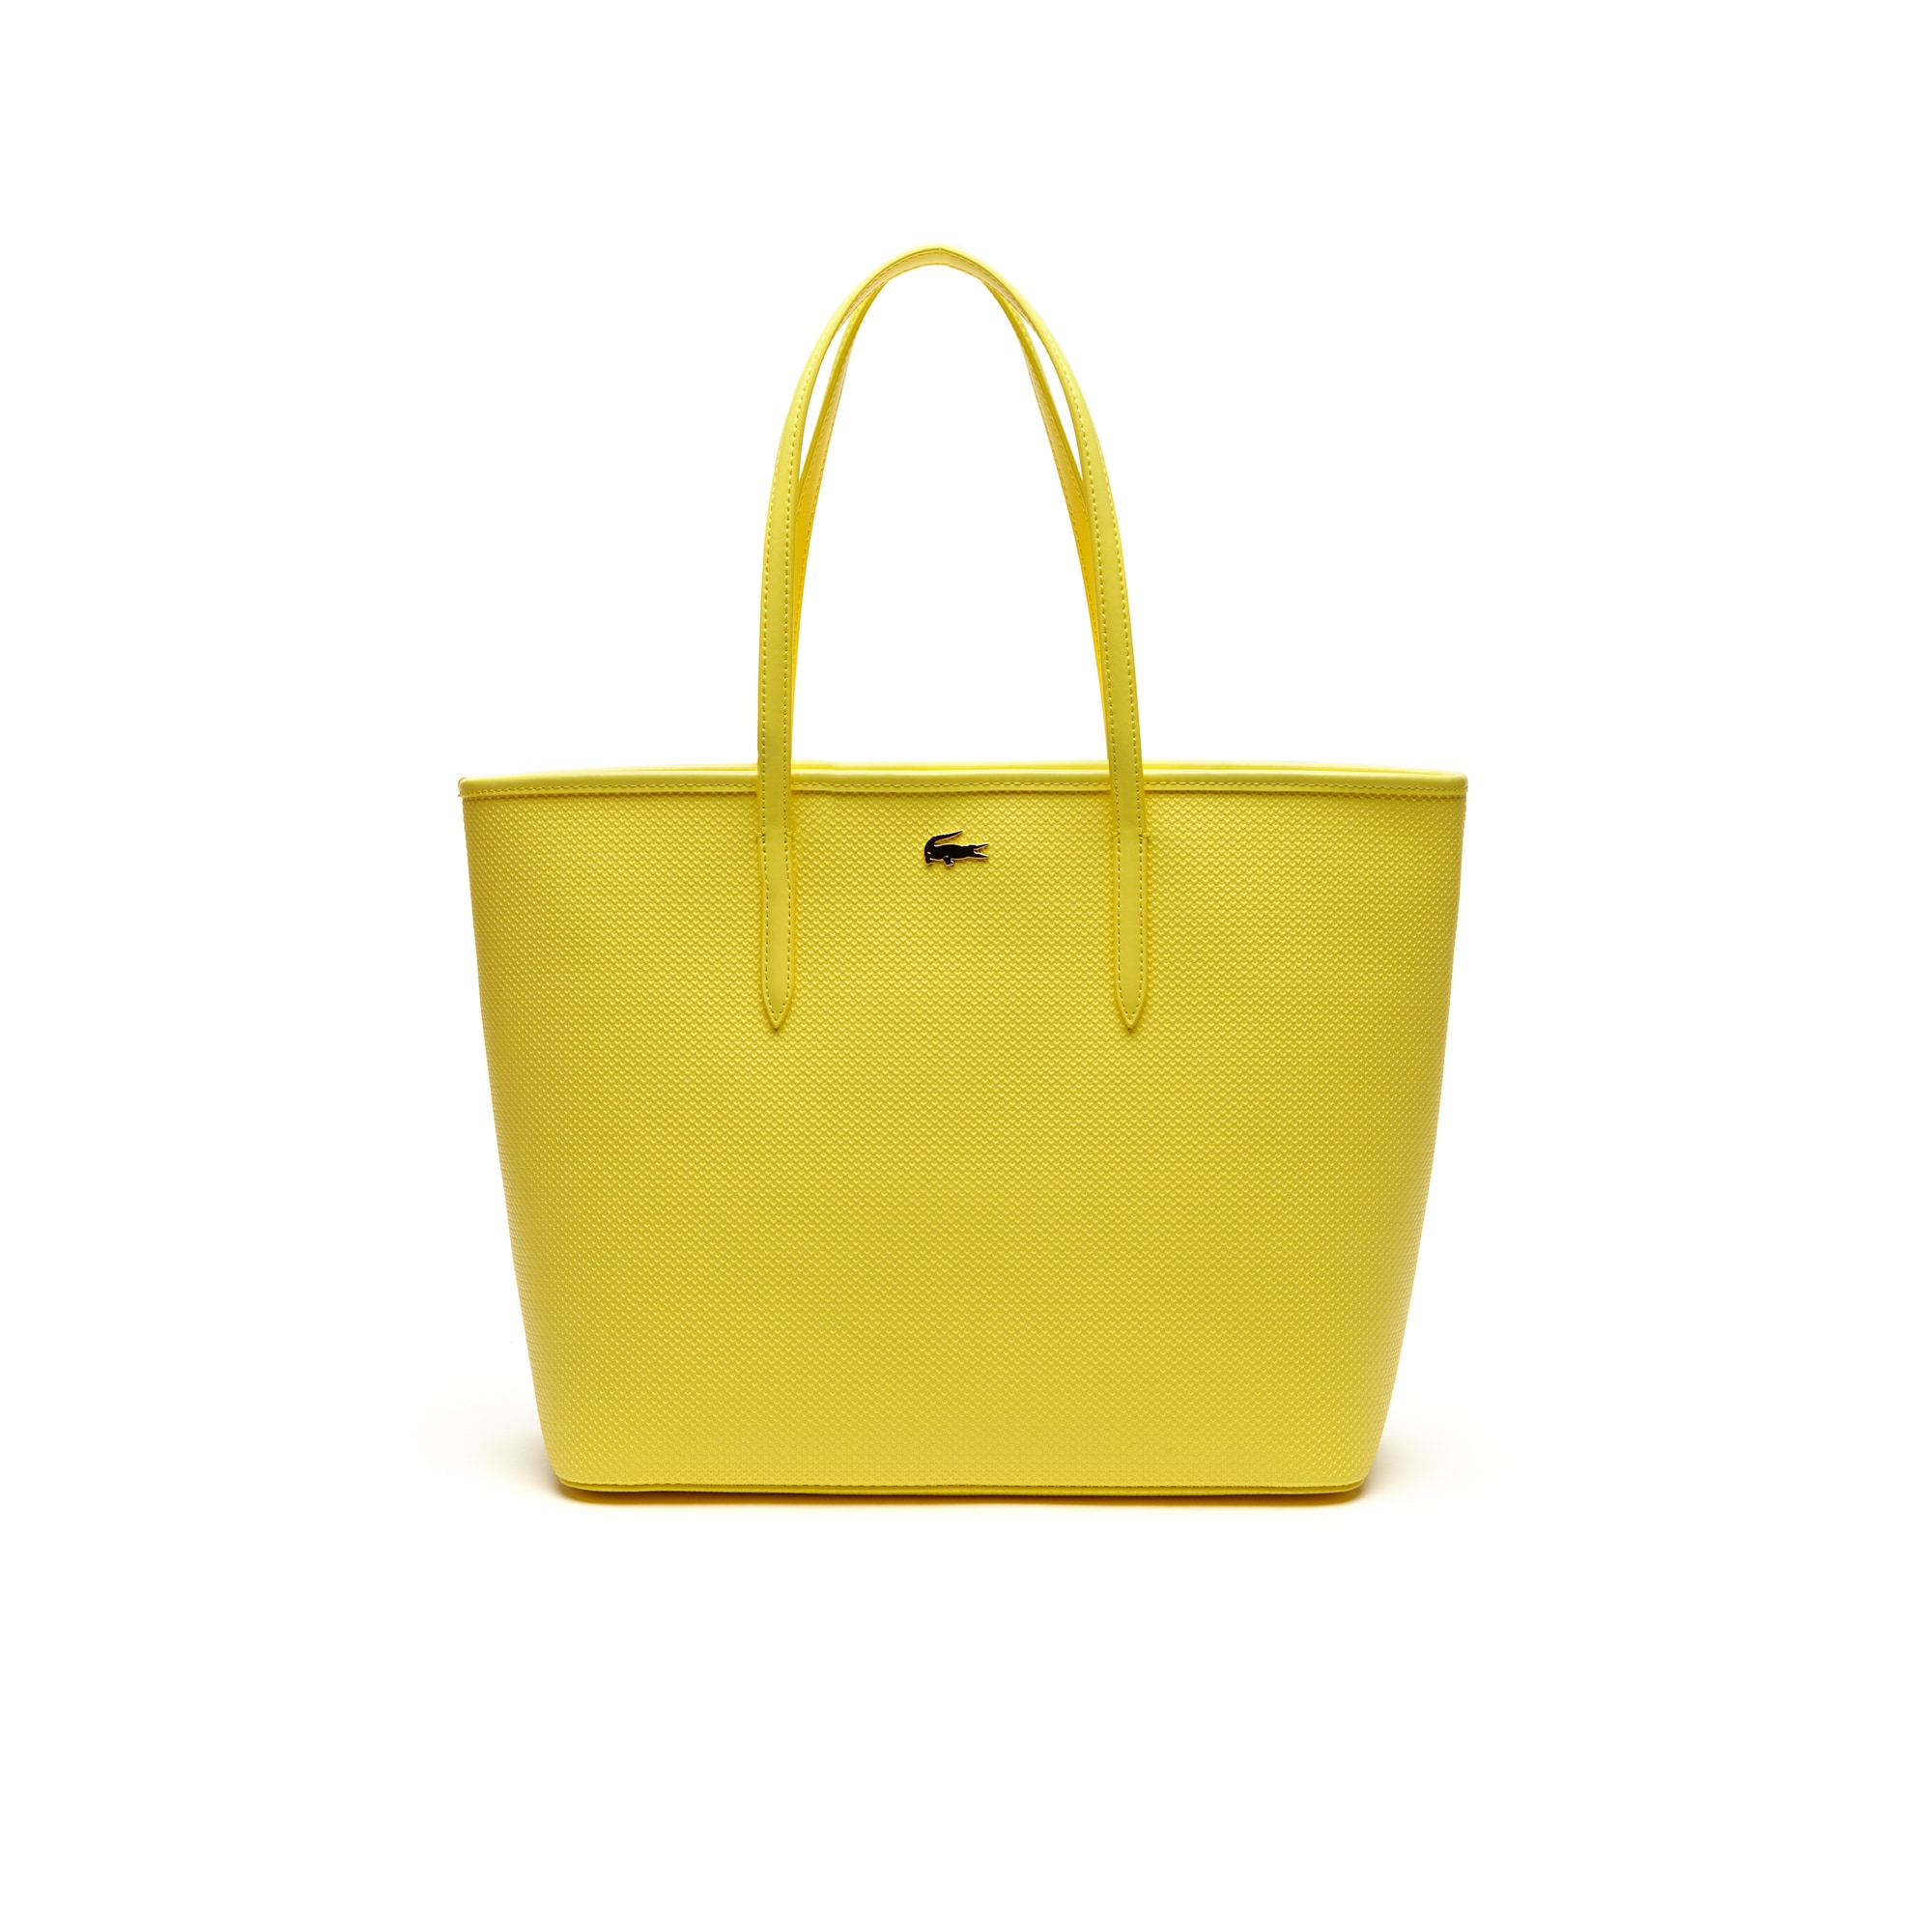 Medium shopping bag Chantaco in leather